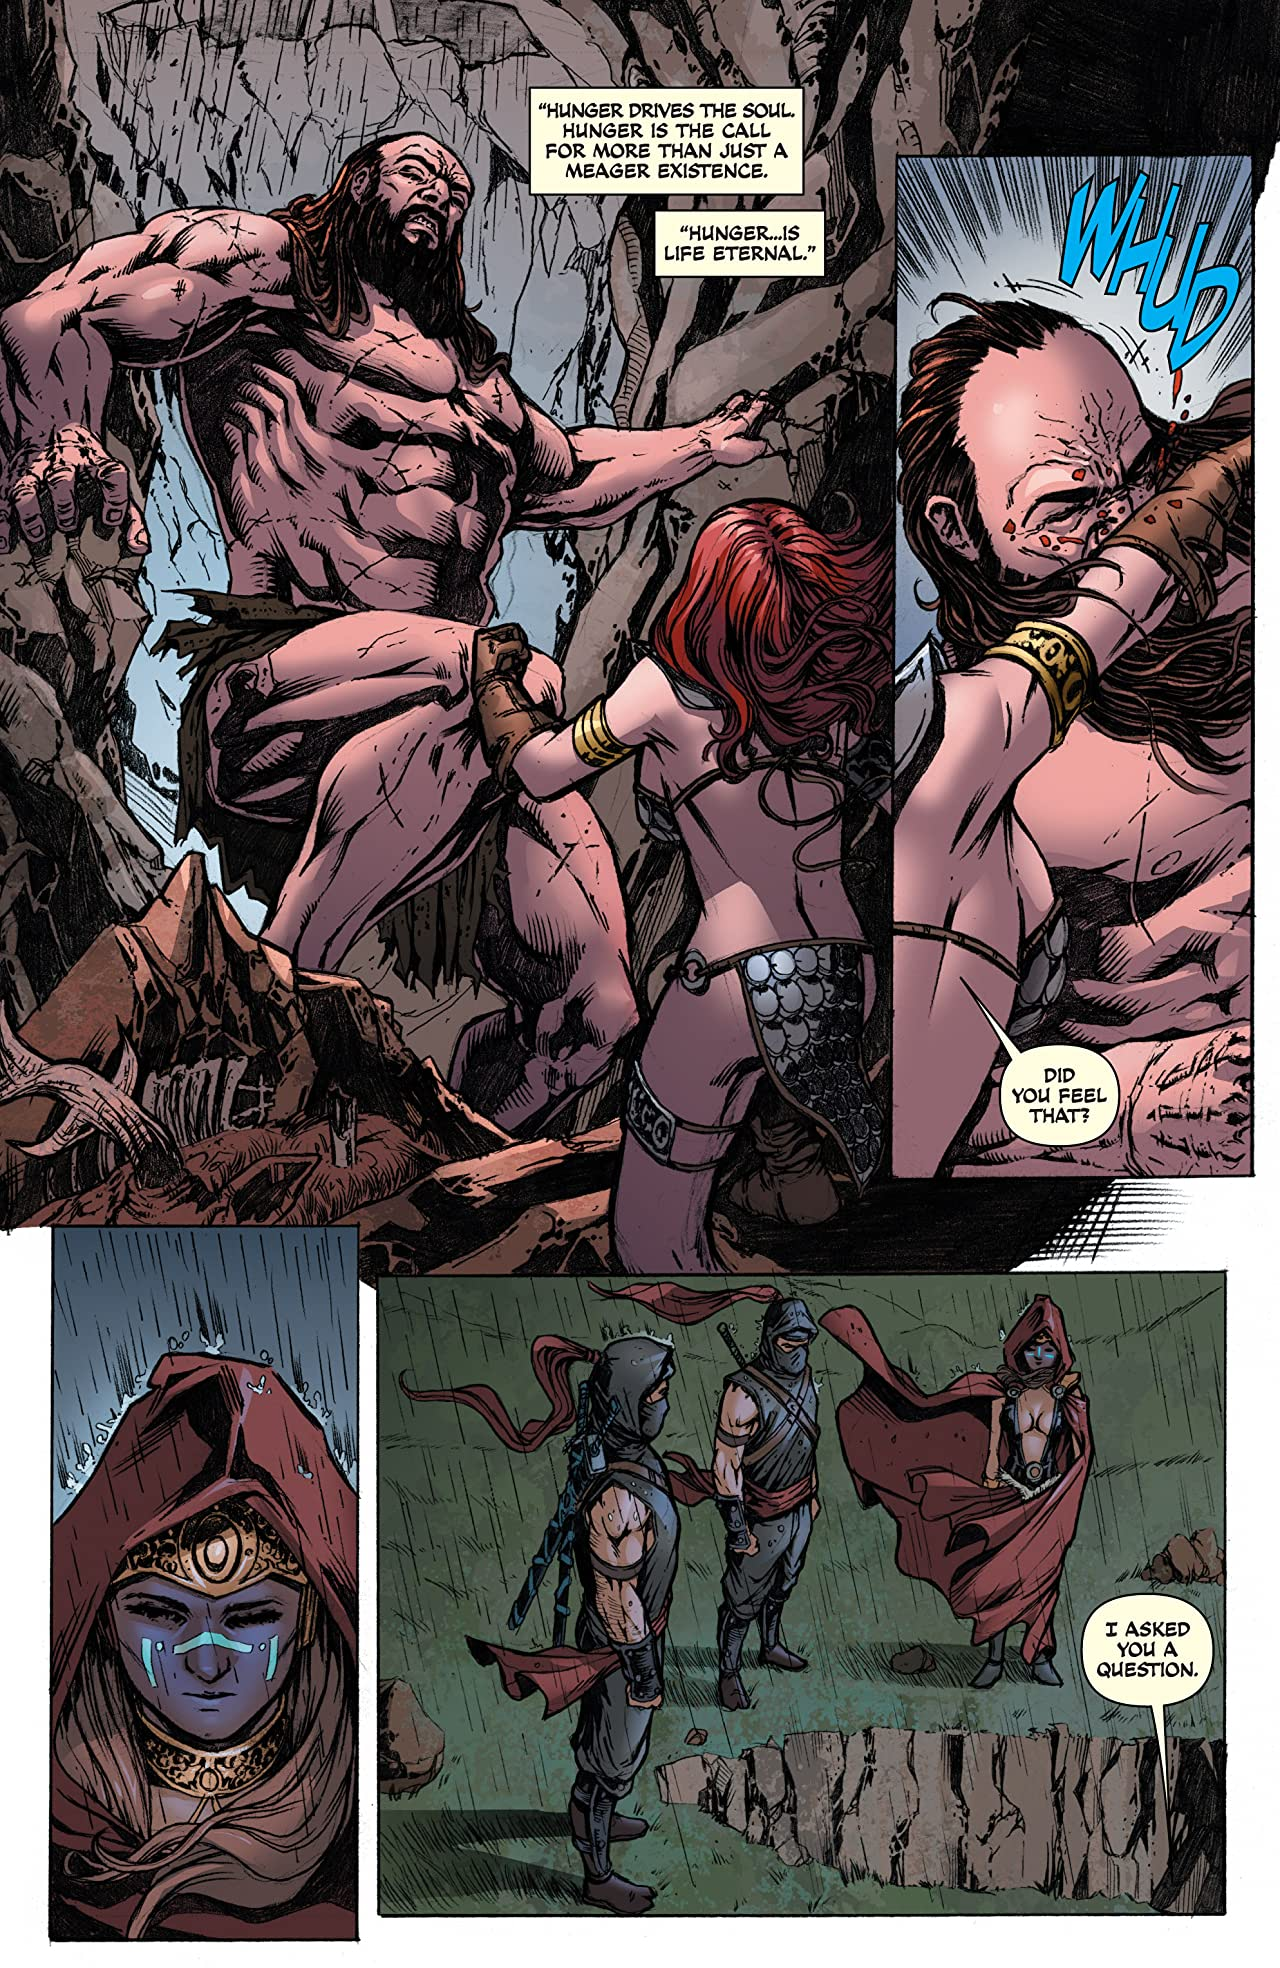 Red Sonja: She-Devil With A Sword #80